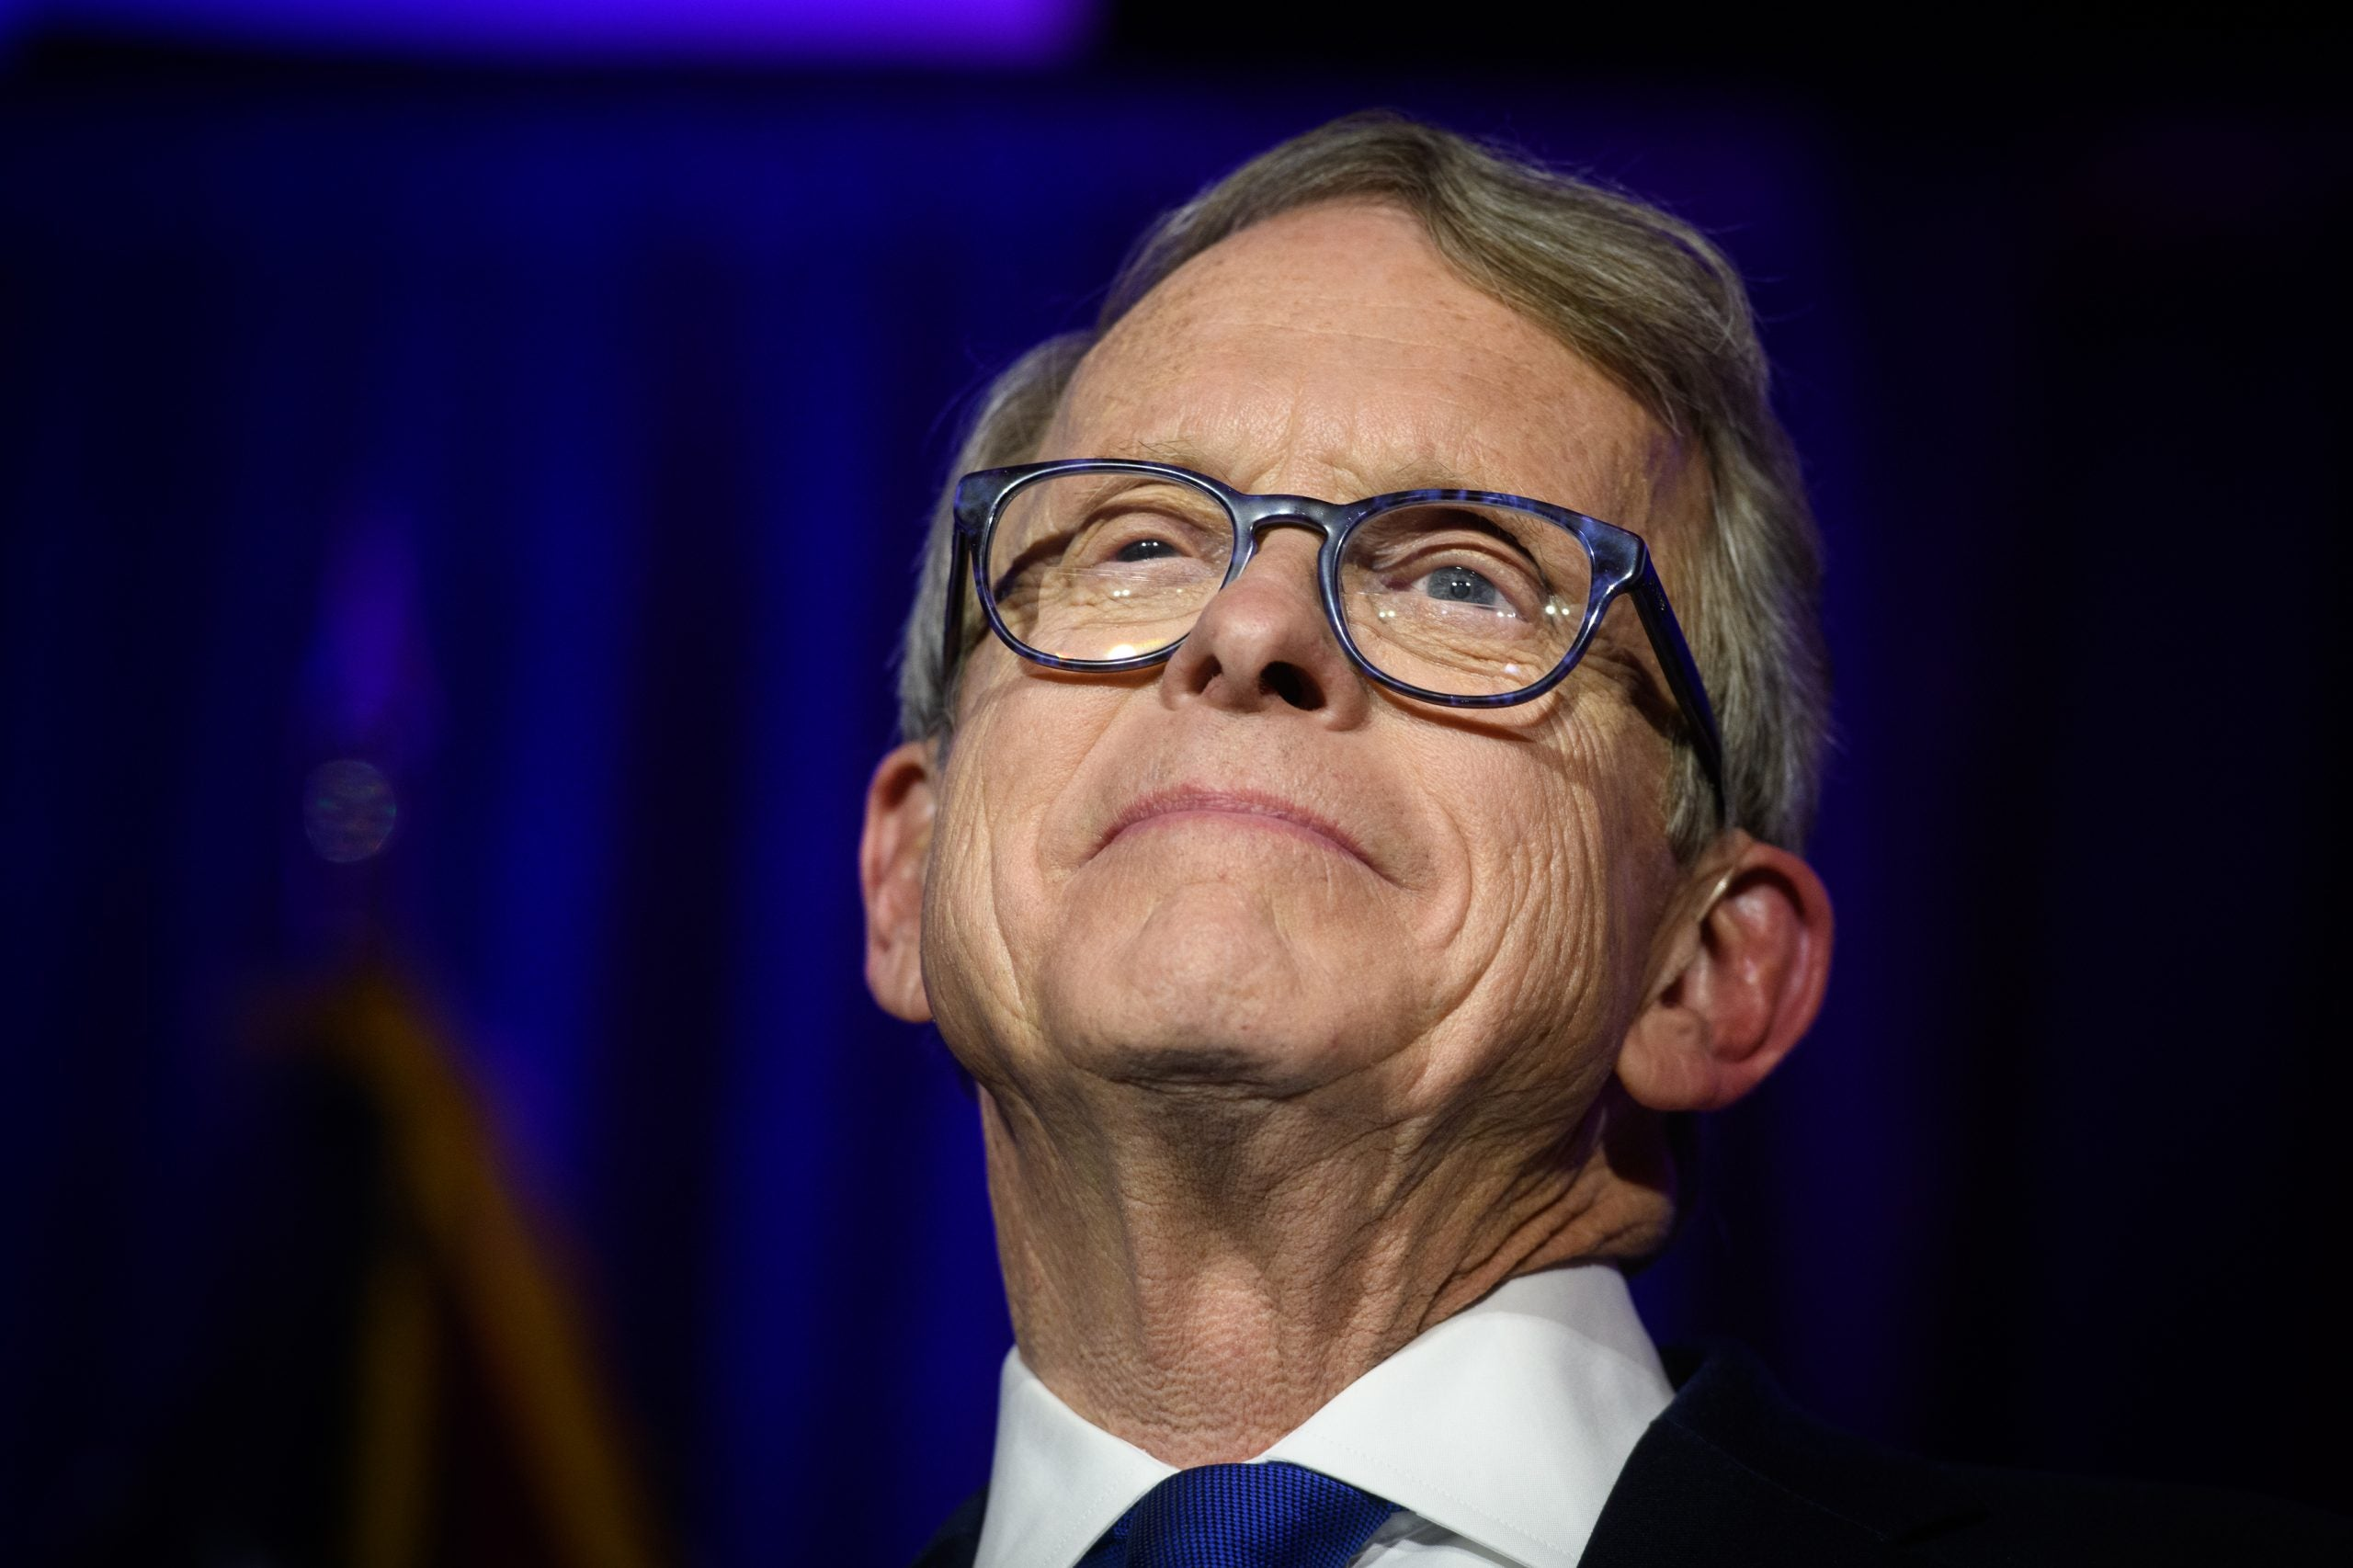 Republican Governor Mike DeWine of Ohio